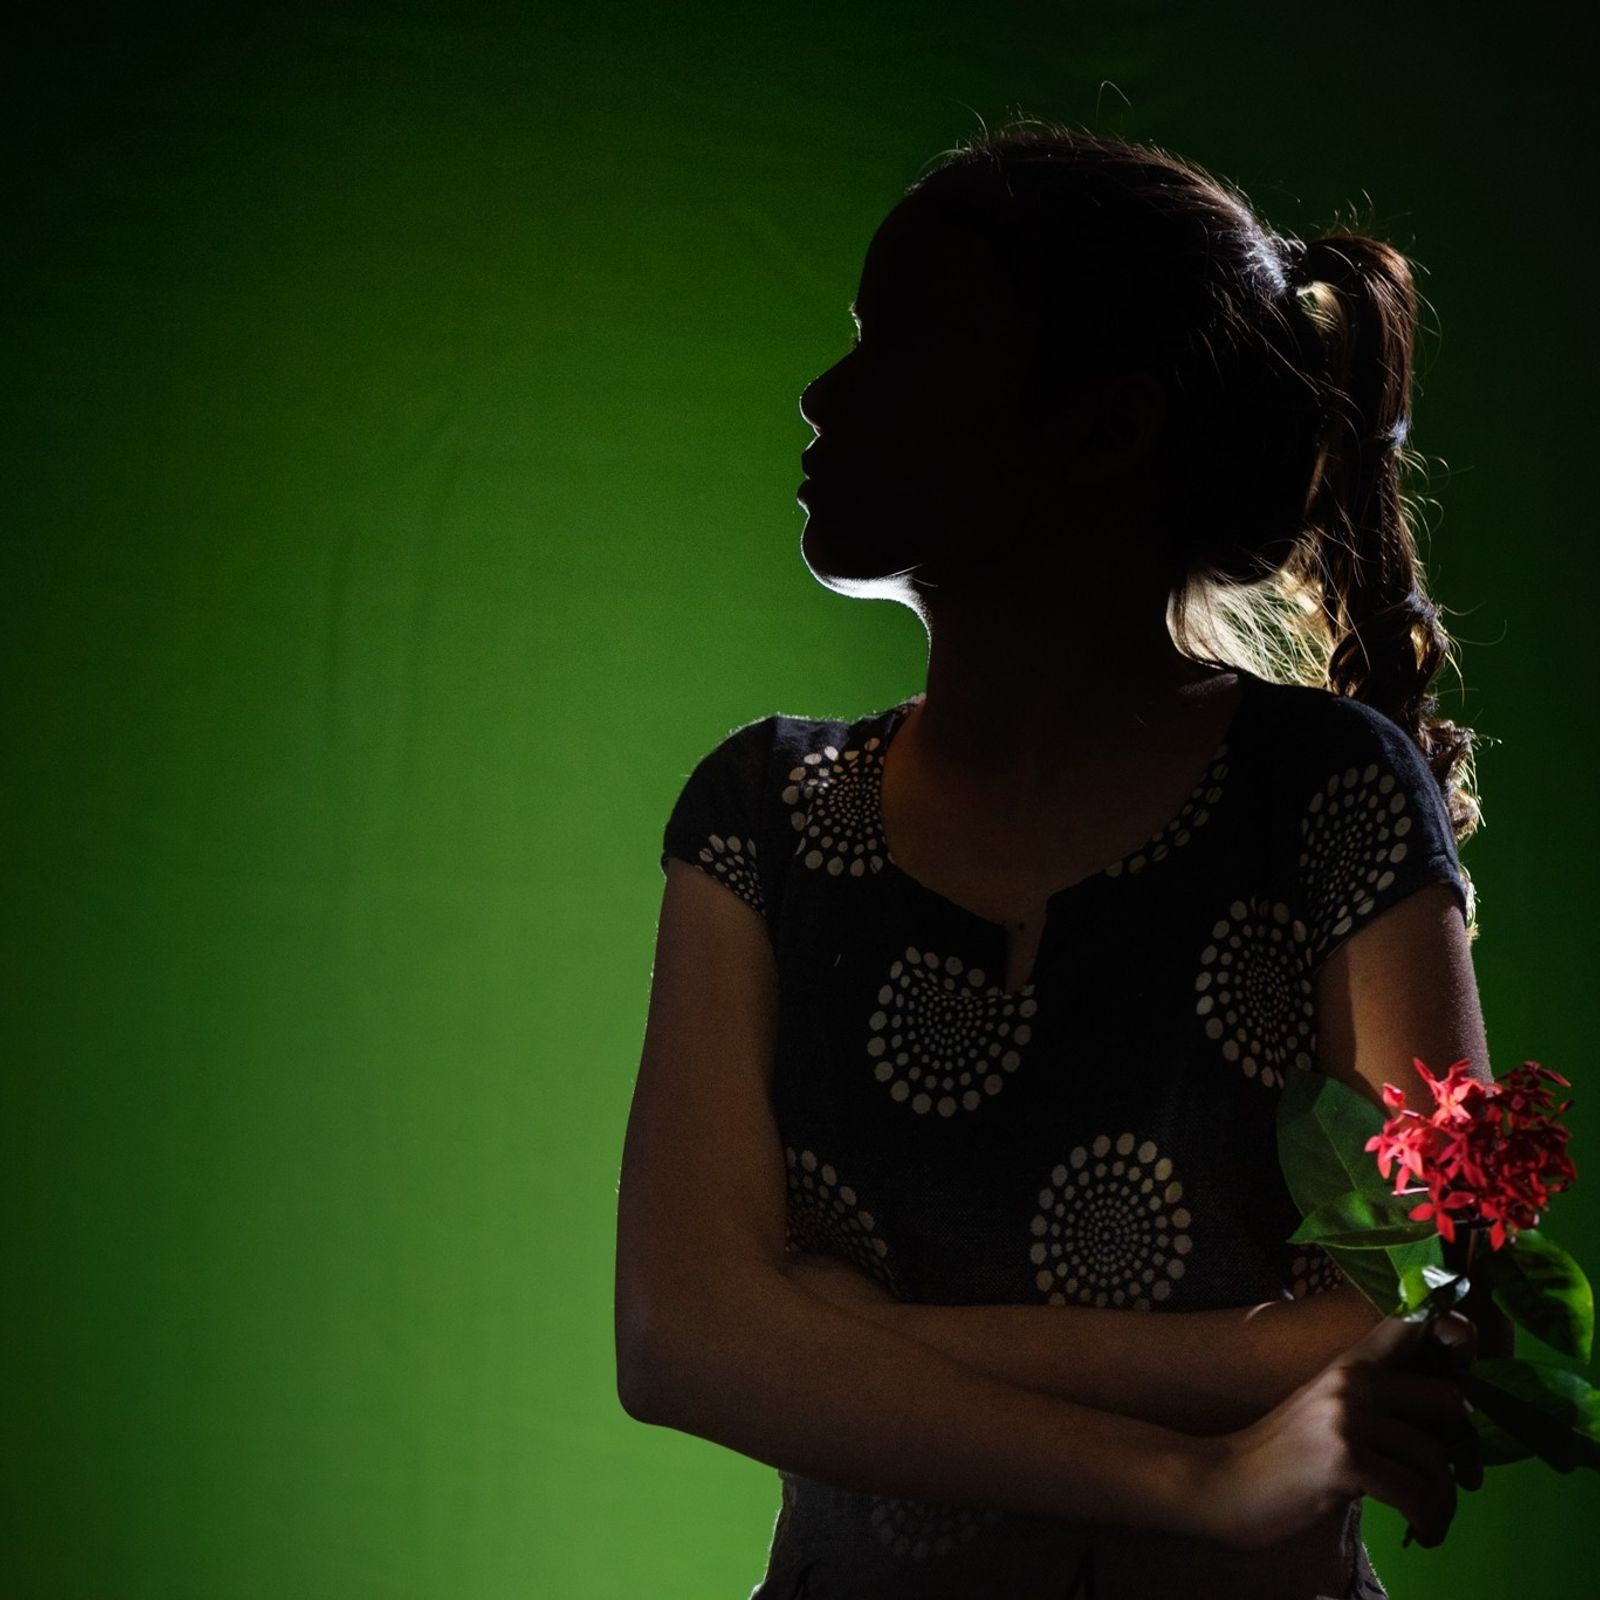 After a fight with her mother, R. left her home near Kolkata, one of India's largest ...